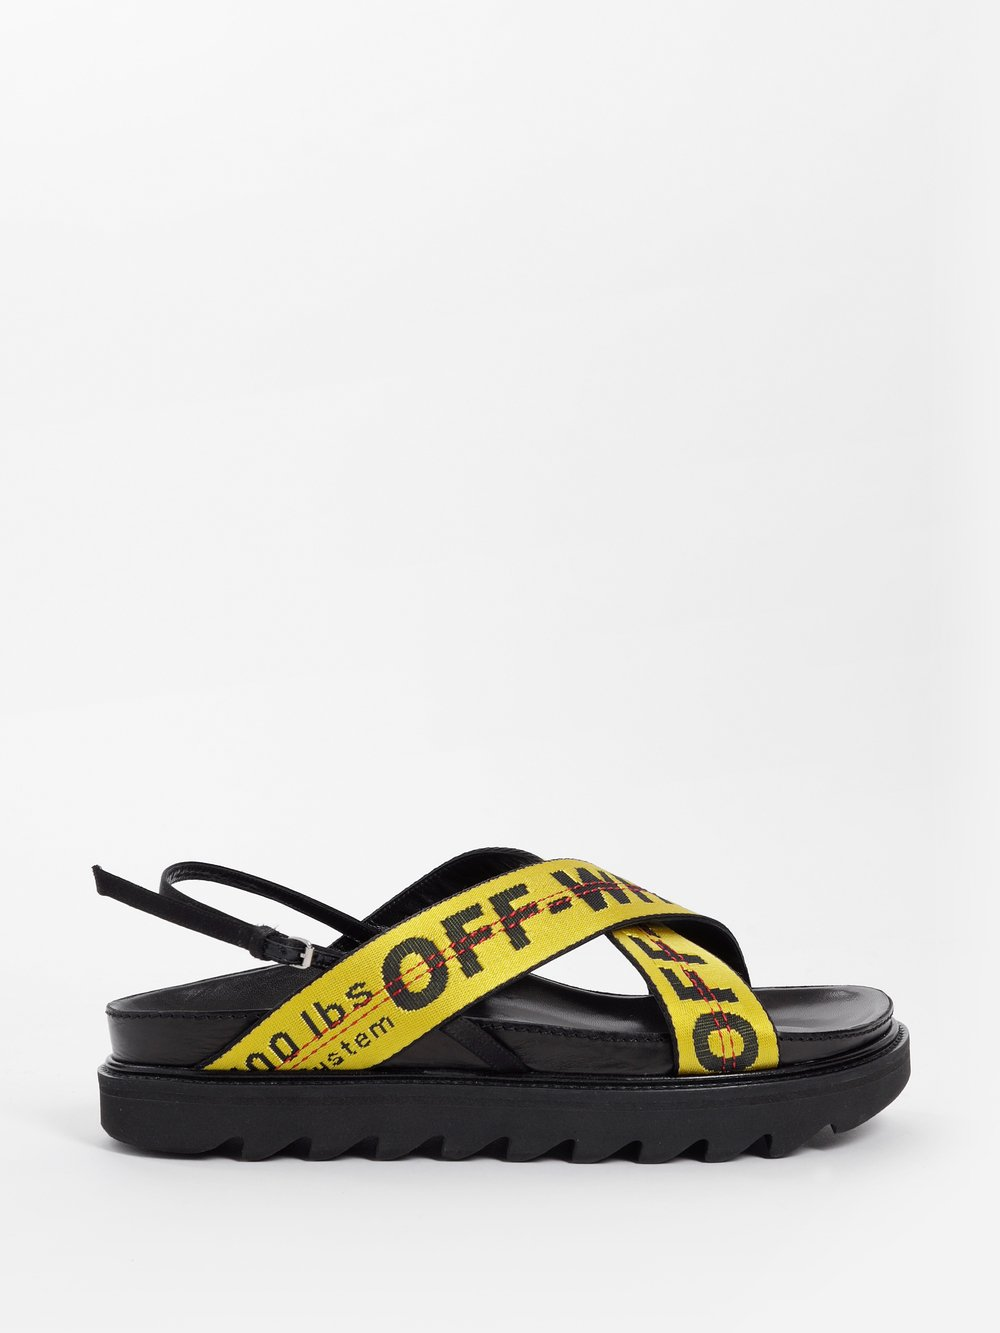 63c88748c3f7 Off-White c o Virgil Abloh - Sandals - Antonioli.eu